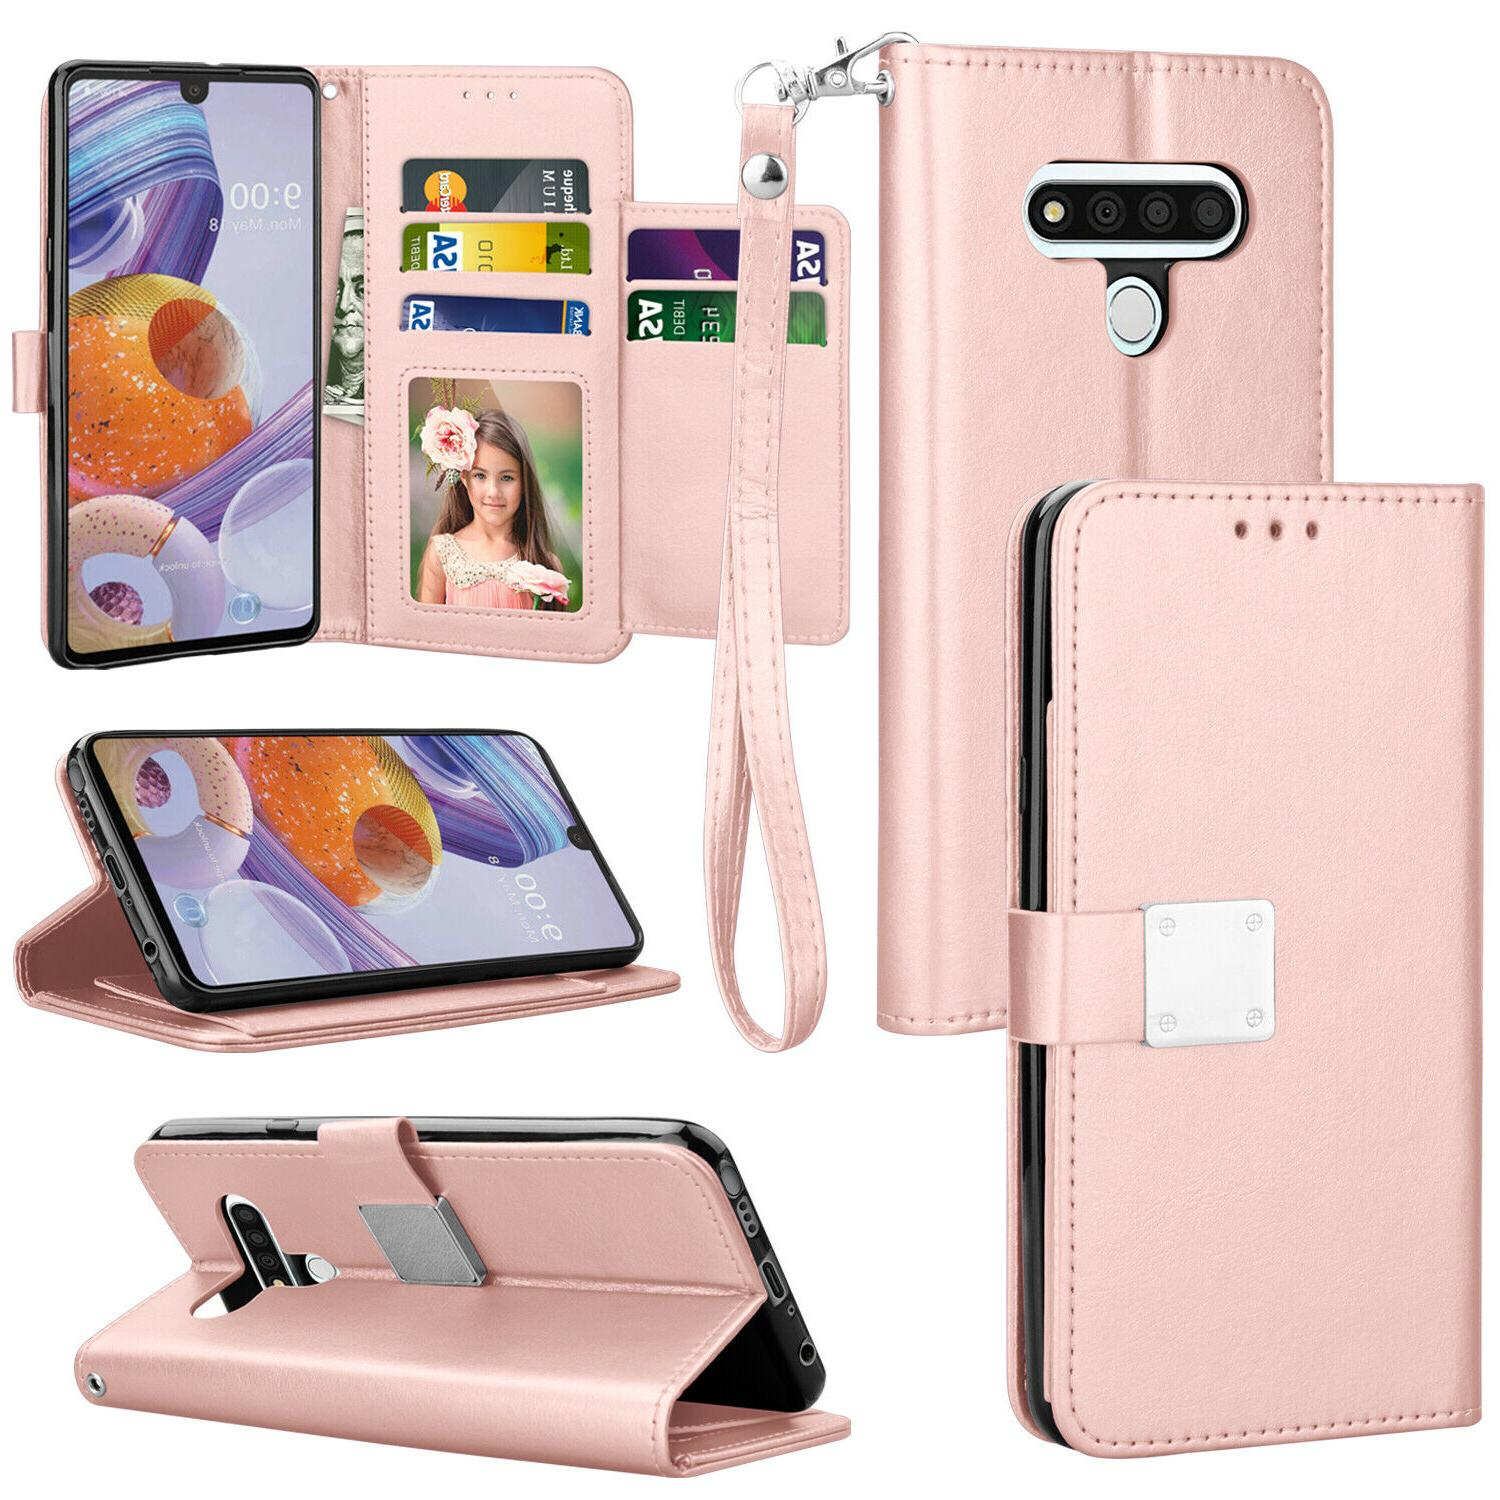 For Lg Stylo 6 Stylo 5 Stylo 4 Manual Guide